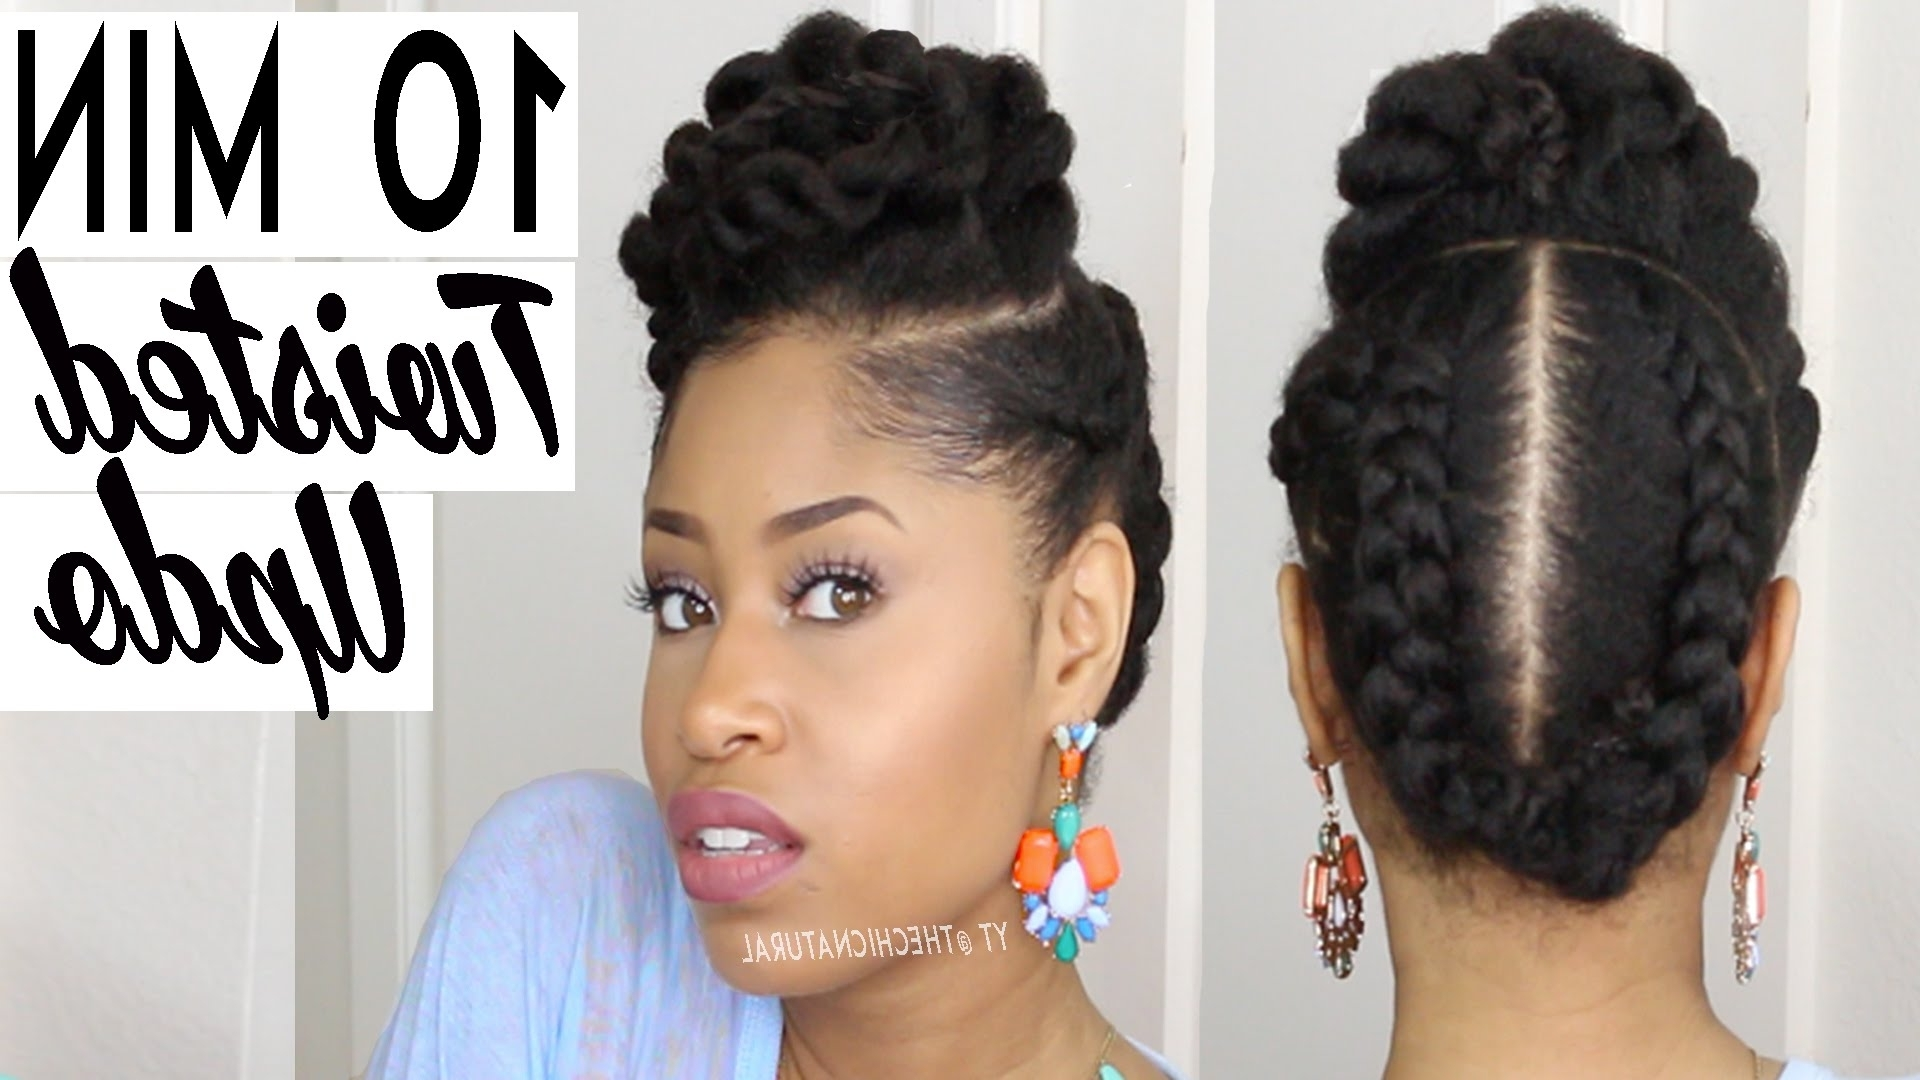 The 10 Minute Twisted Updo | Natural Hairstyle – Youtube Inside Natural Updo Hairstyles (View 14 of 15)